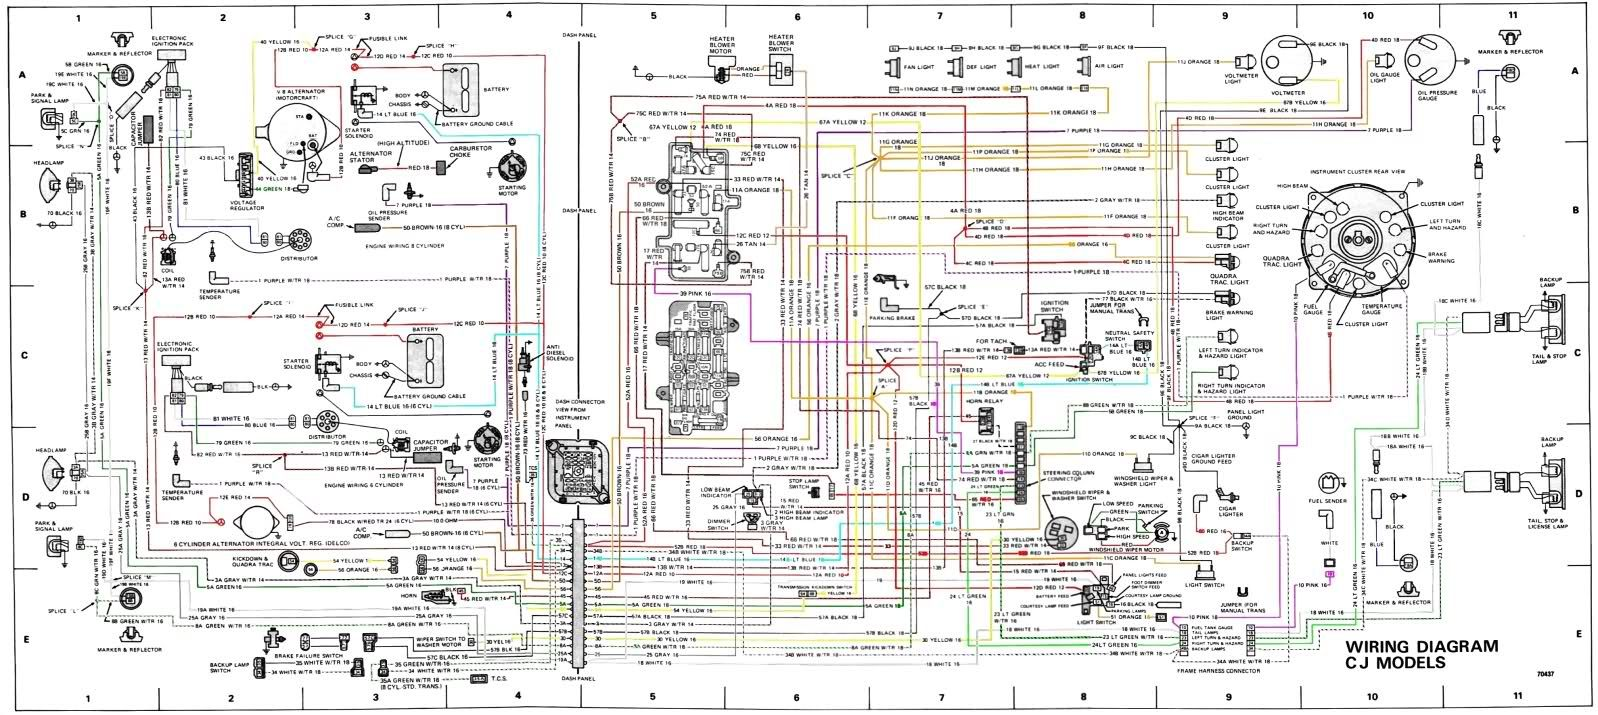 medium resolution of image result for jeep cj7 wiring harness diagram jeep wire diagram 83 jeep cj7 wiring